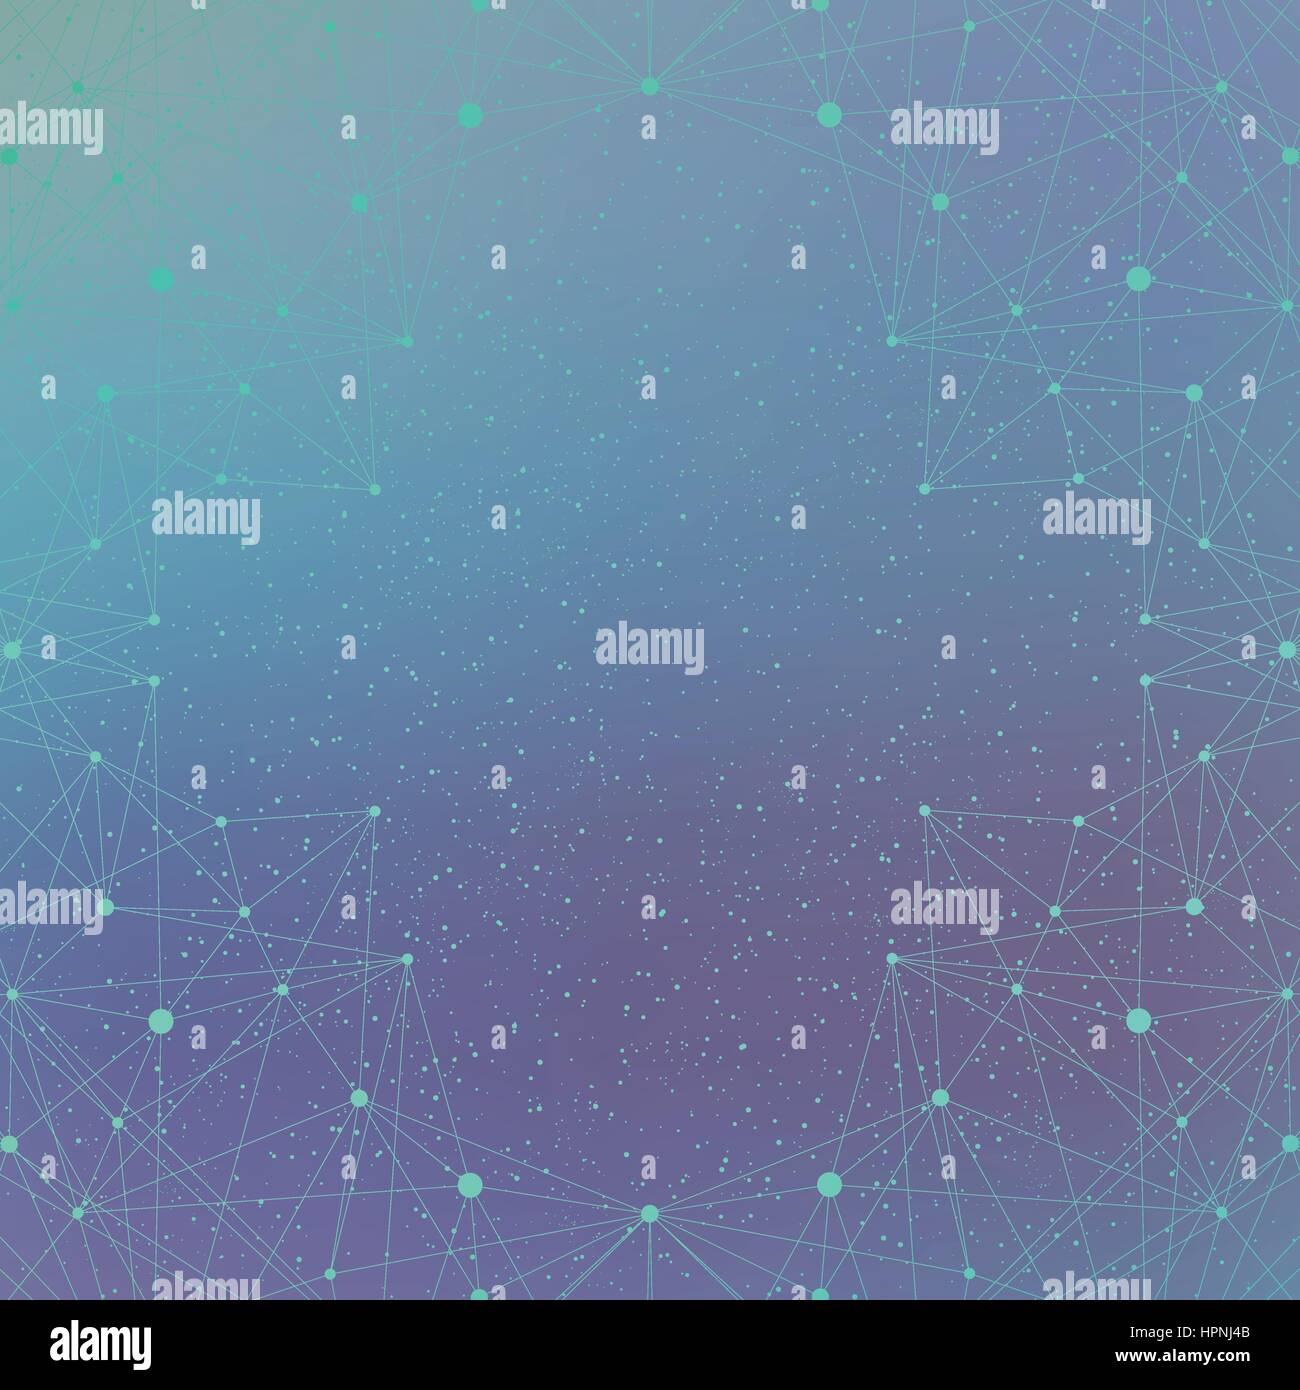 Geometric background molecule and communication for your design. Connected lines with dots .Vector illustration - Stock Vector